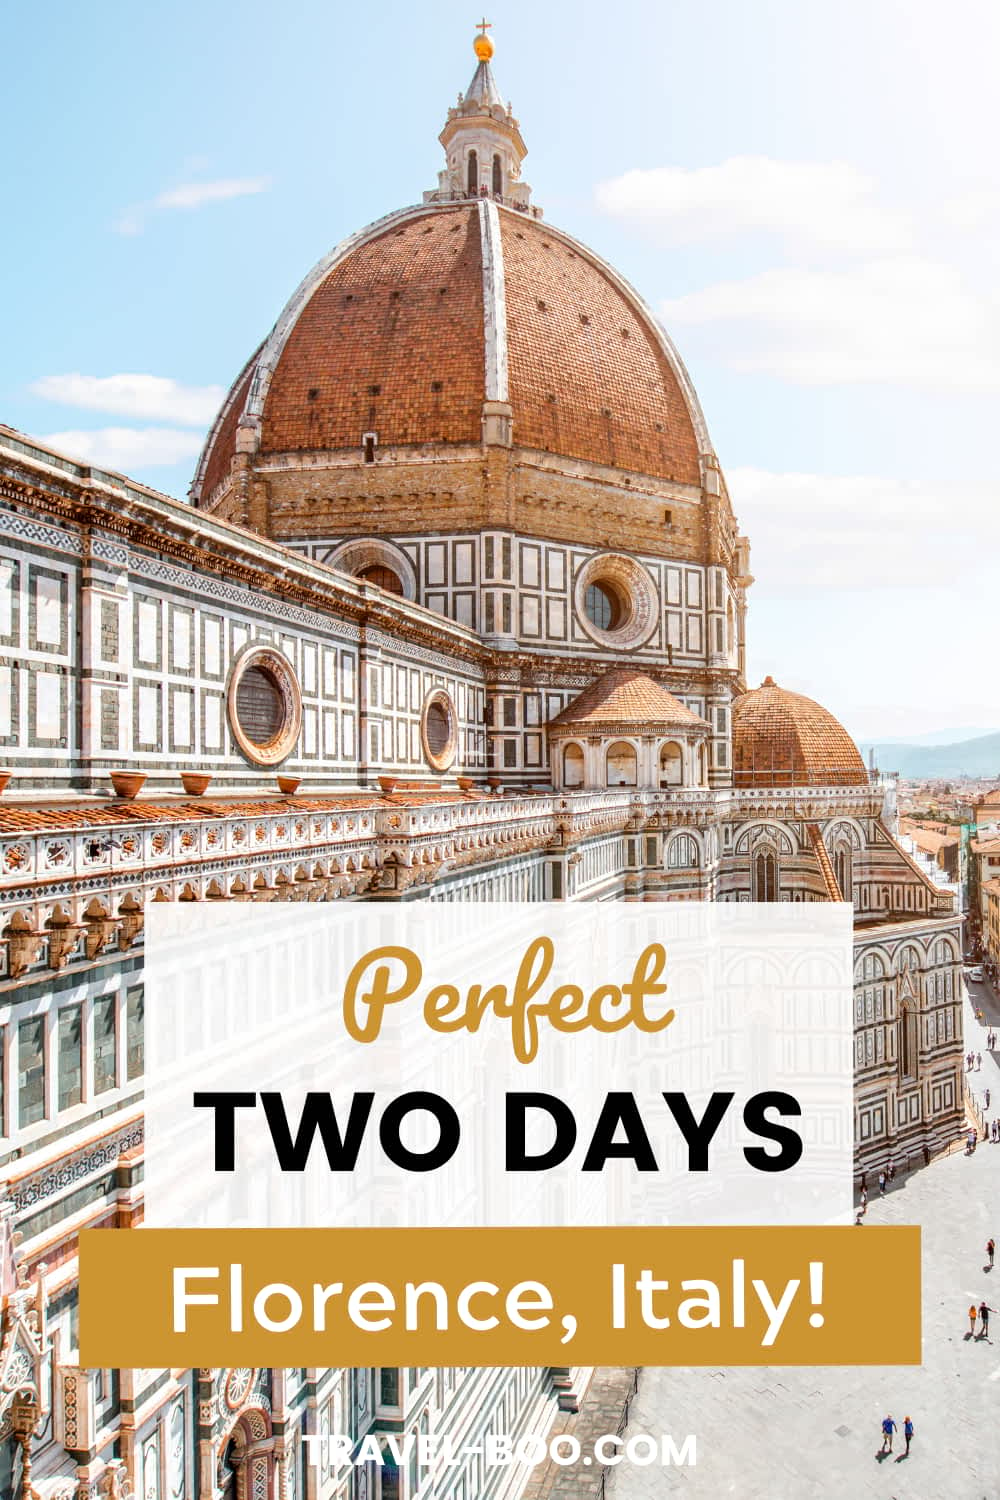 The Ultimate 2 Days in Florence Itinerary - Italy Travel Guide! Florence Travel, Florence Itinerary, Florence Travel Guide, Florence Travel Things to do, Florence Italy, Italy Travel Guide, Italy Itinerary. #florencetravel #florenceitinerary #florencetravelguide #florenceitaly